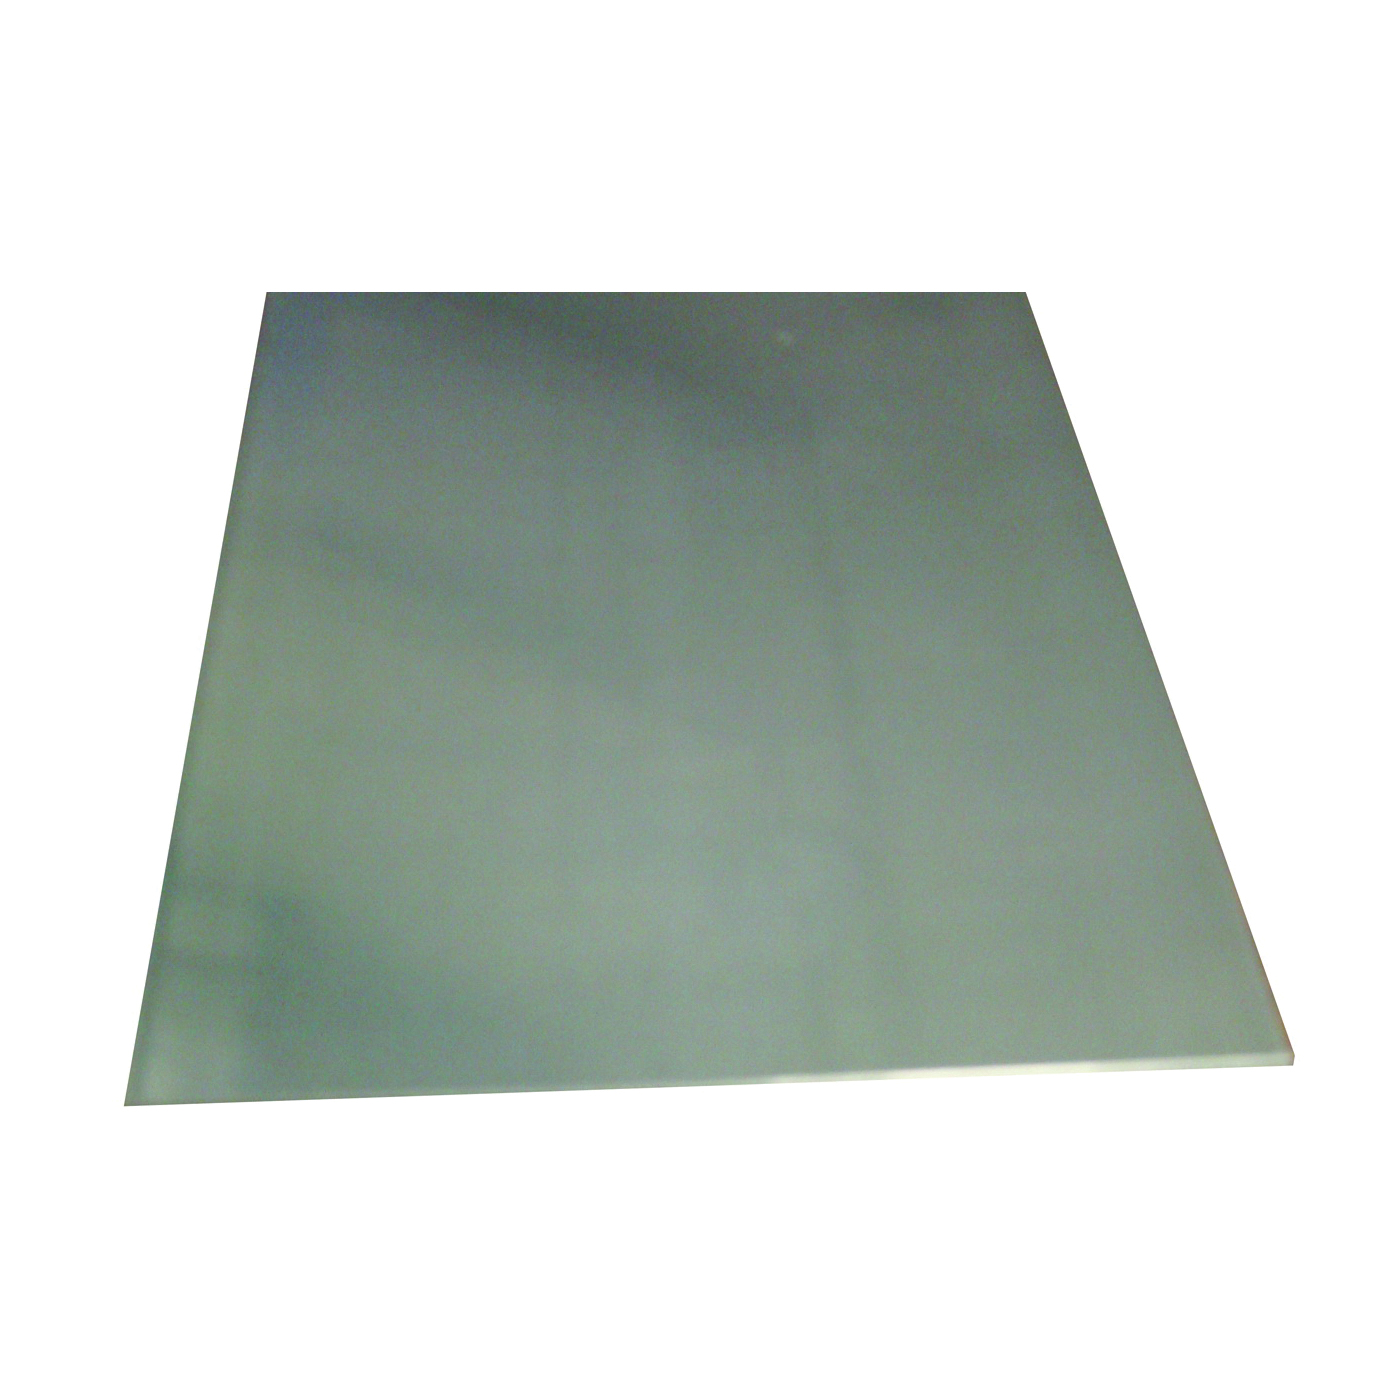 Picture of K & S 87183 Metal Sheet, 26 Thick Material, 6 in W, 12 in L, Stainless Steel